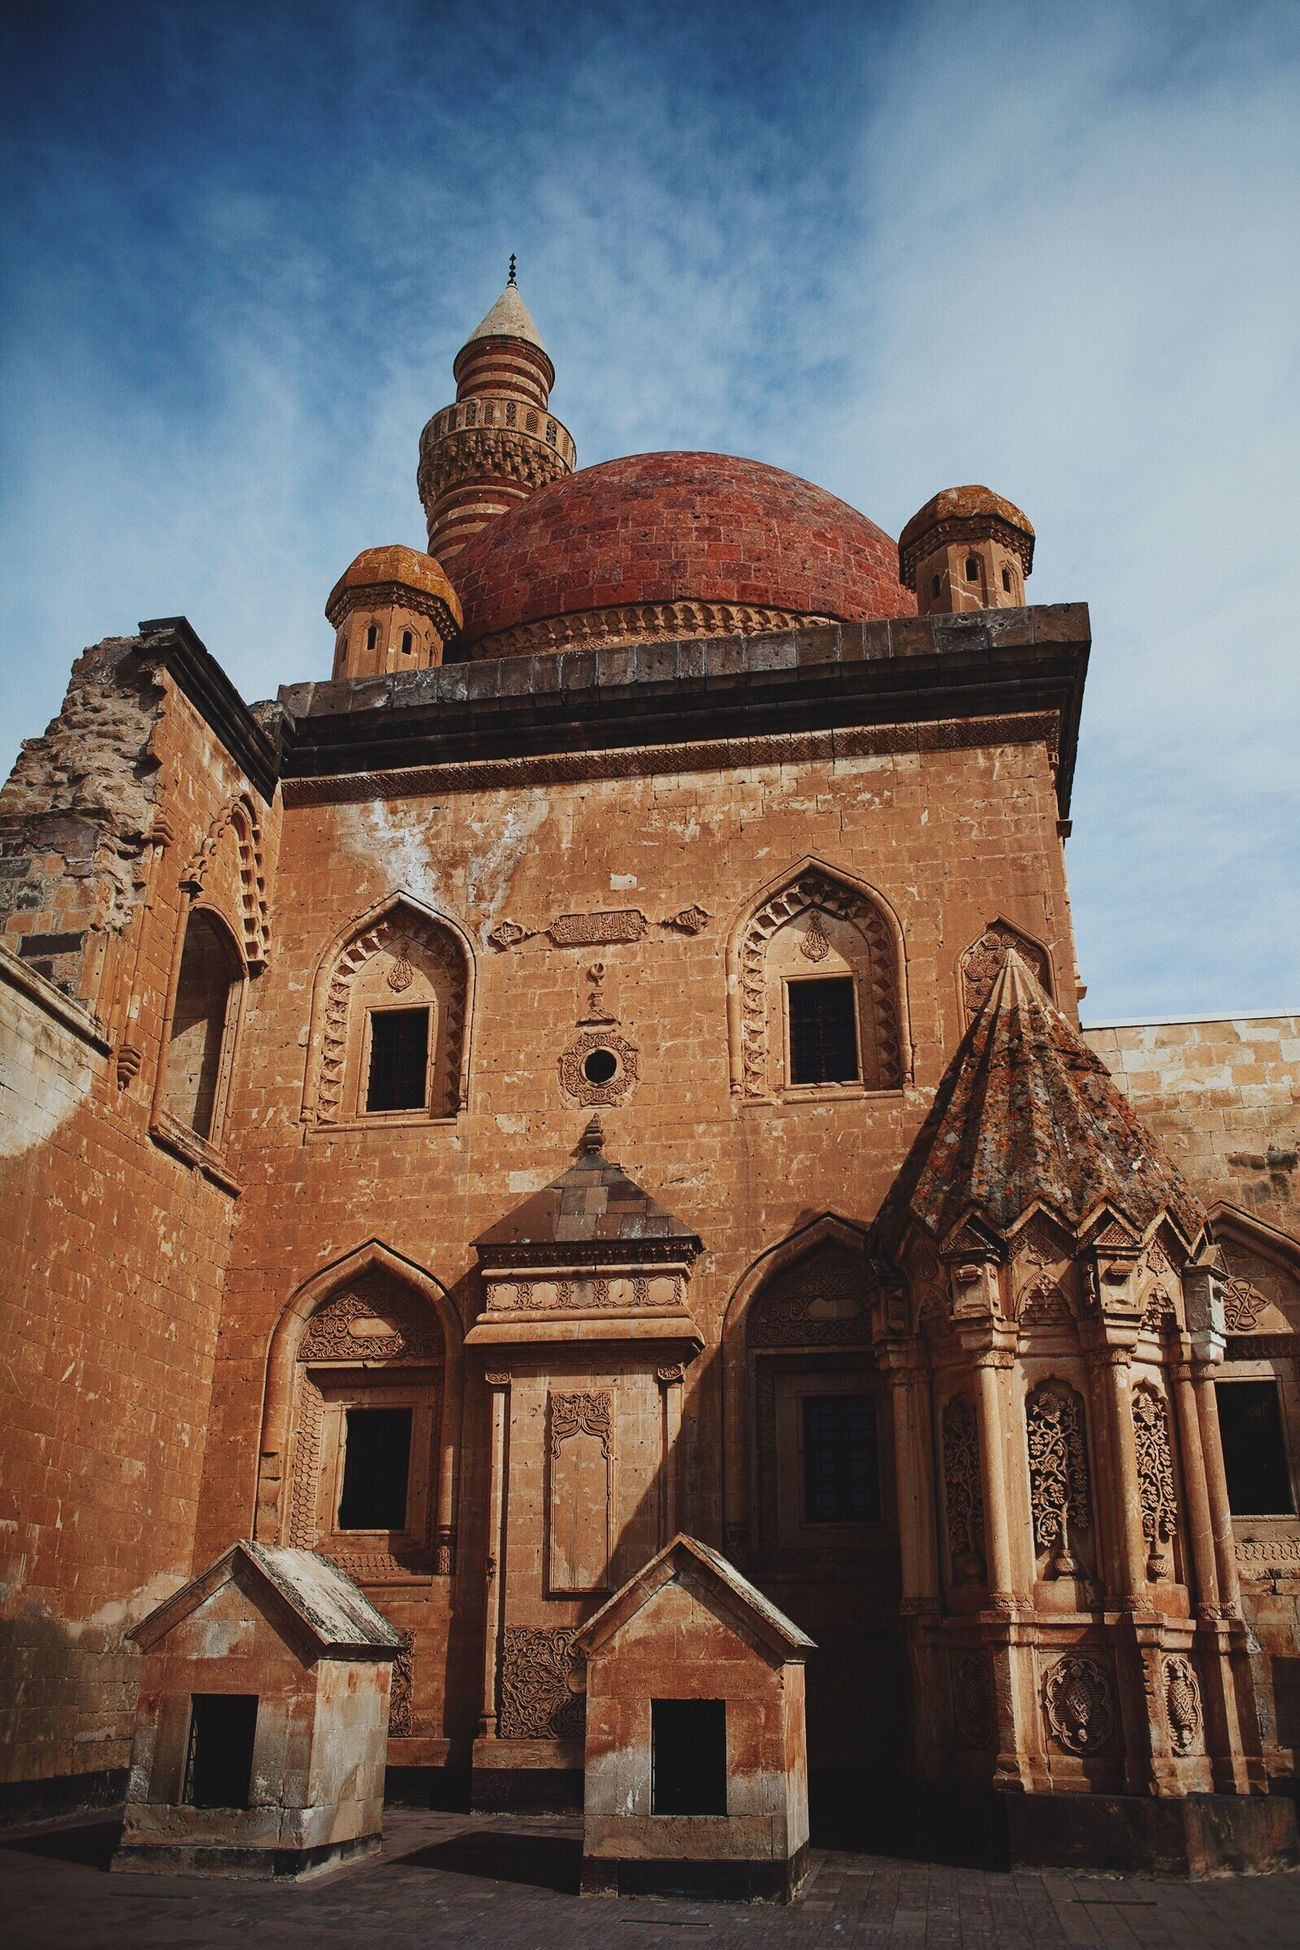 Architecture Building Exterior Built Structure Travel Destinations History Spirituality Outdoors Canon Doğubeyazıt Ishak Pasha Palace Ağrı Cultures Turkey 2017 Photooftheday EyeEm 28mm Tranquility Travel